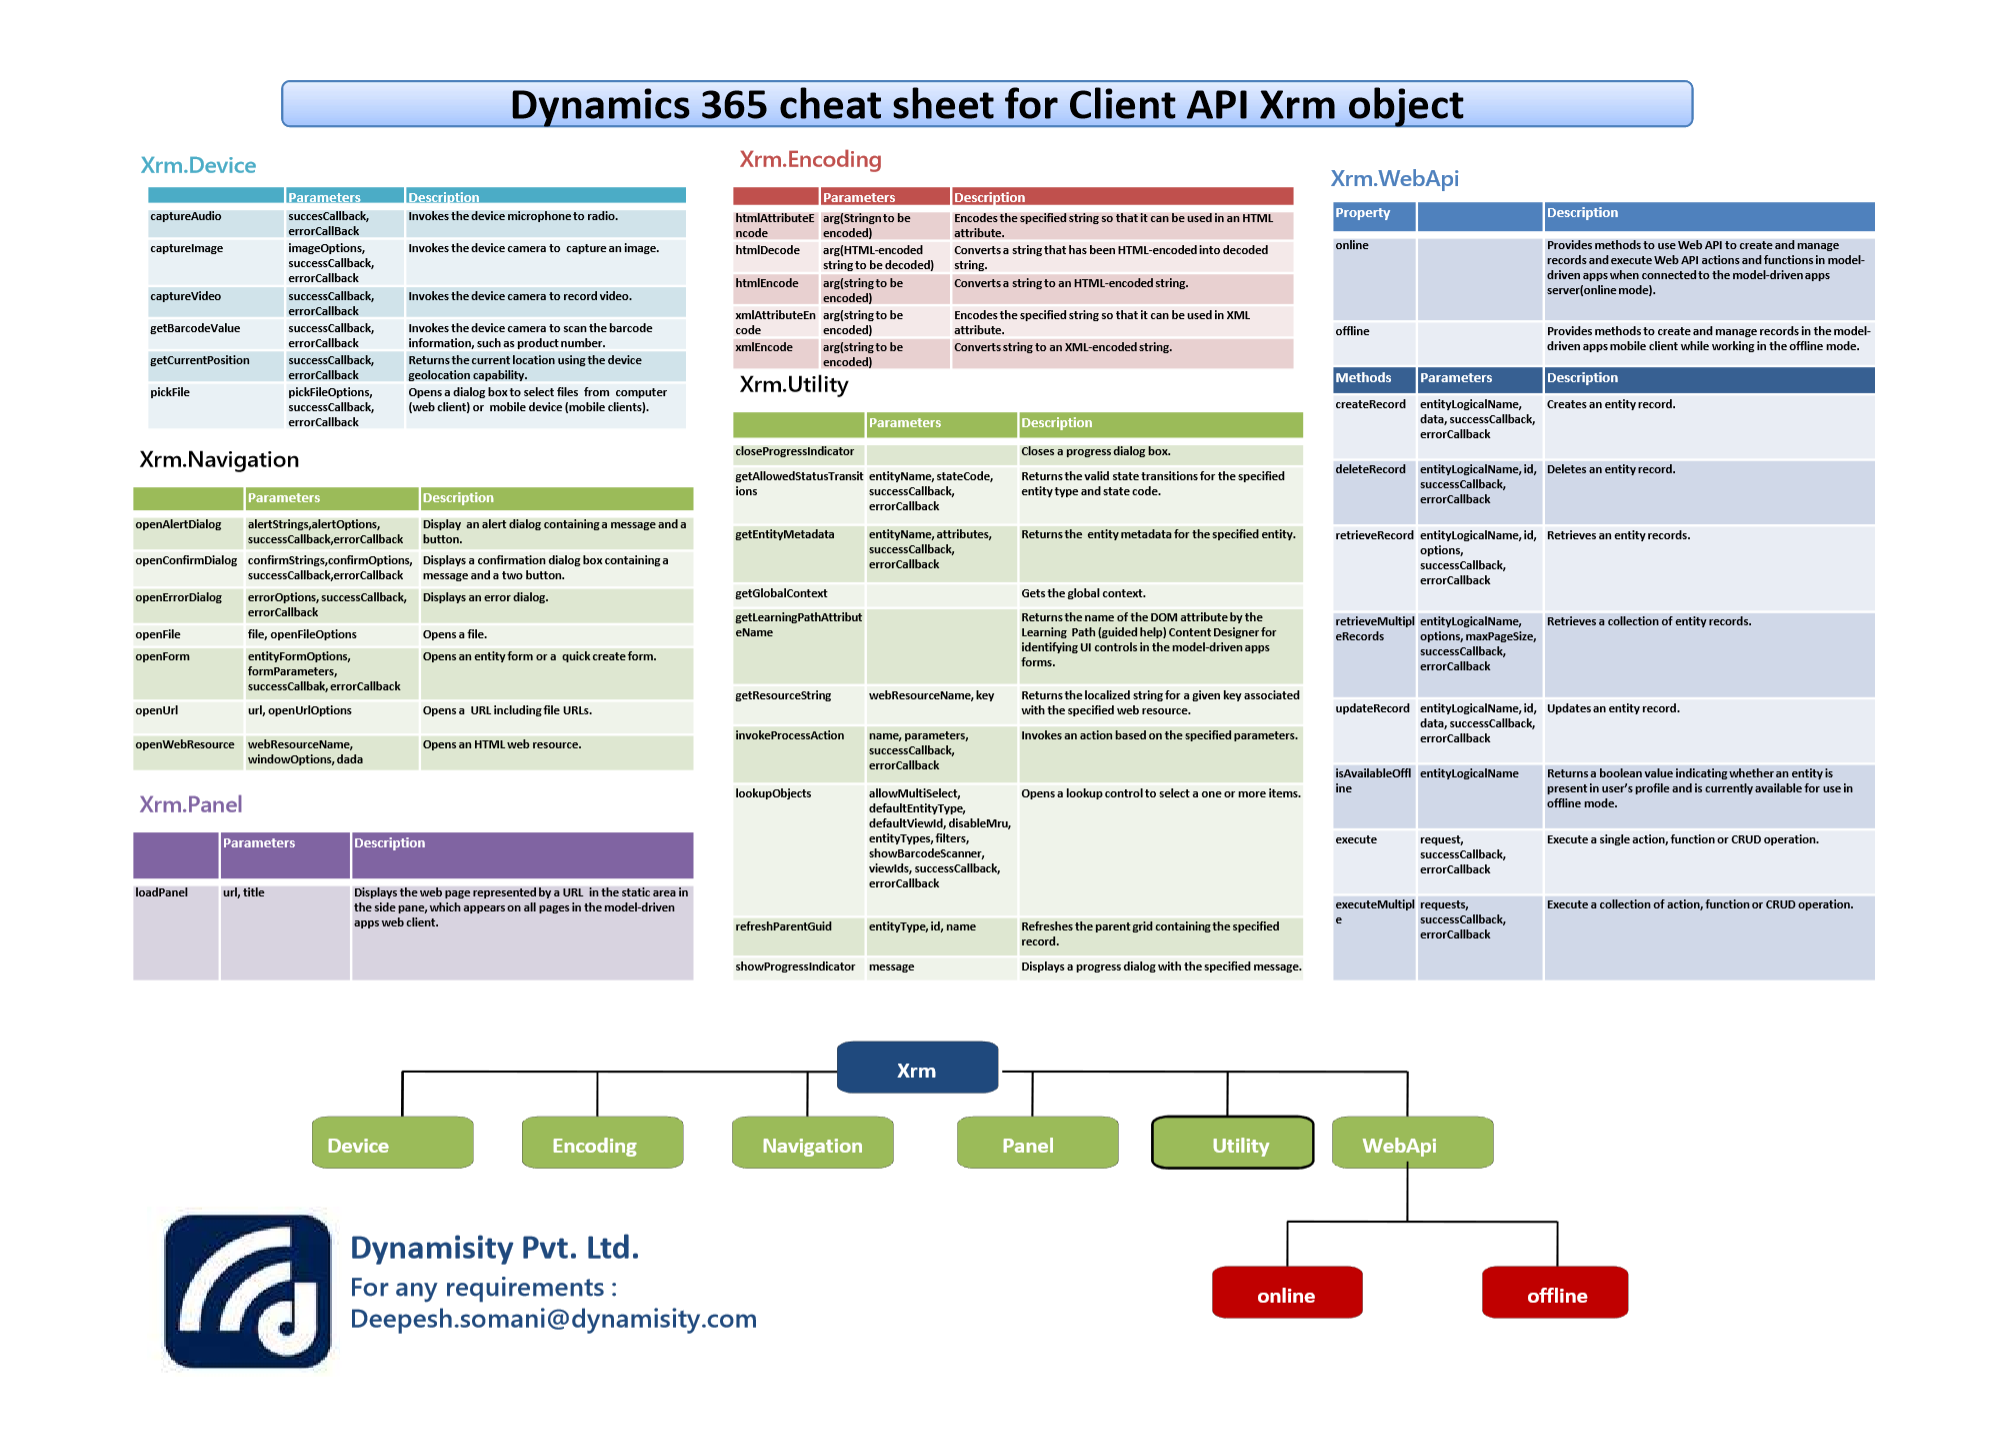 Quick Reference} Dynamics 365 cheat sheet for Client API Xrm